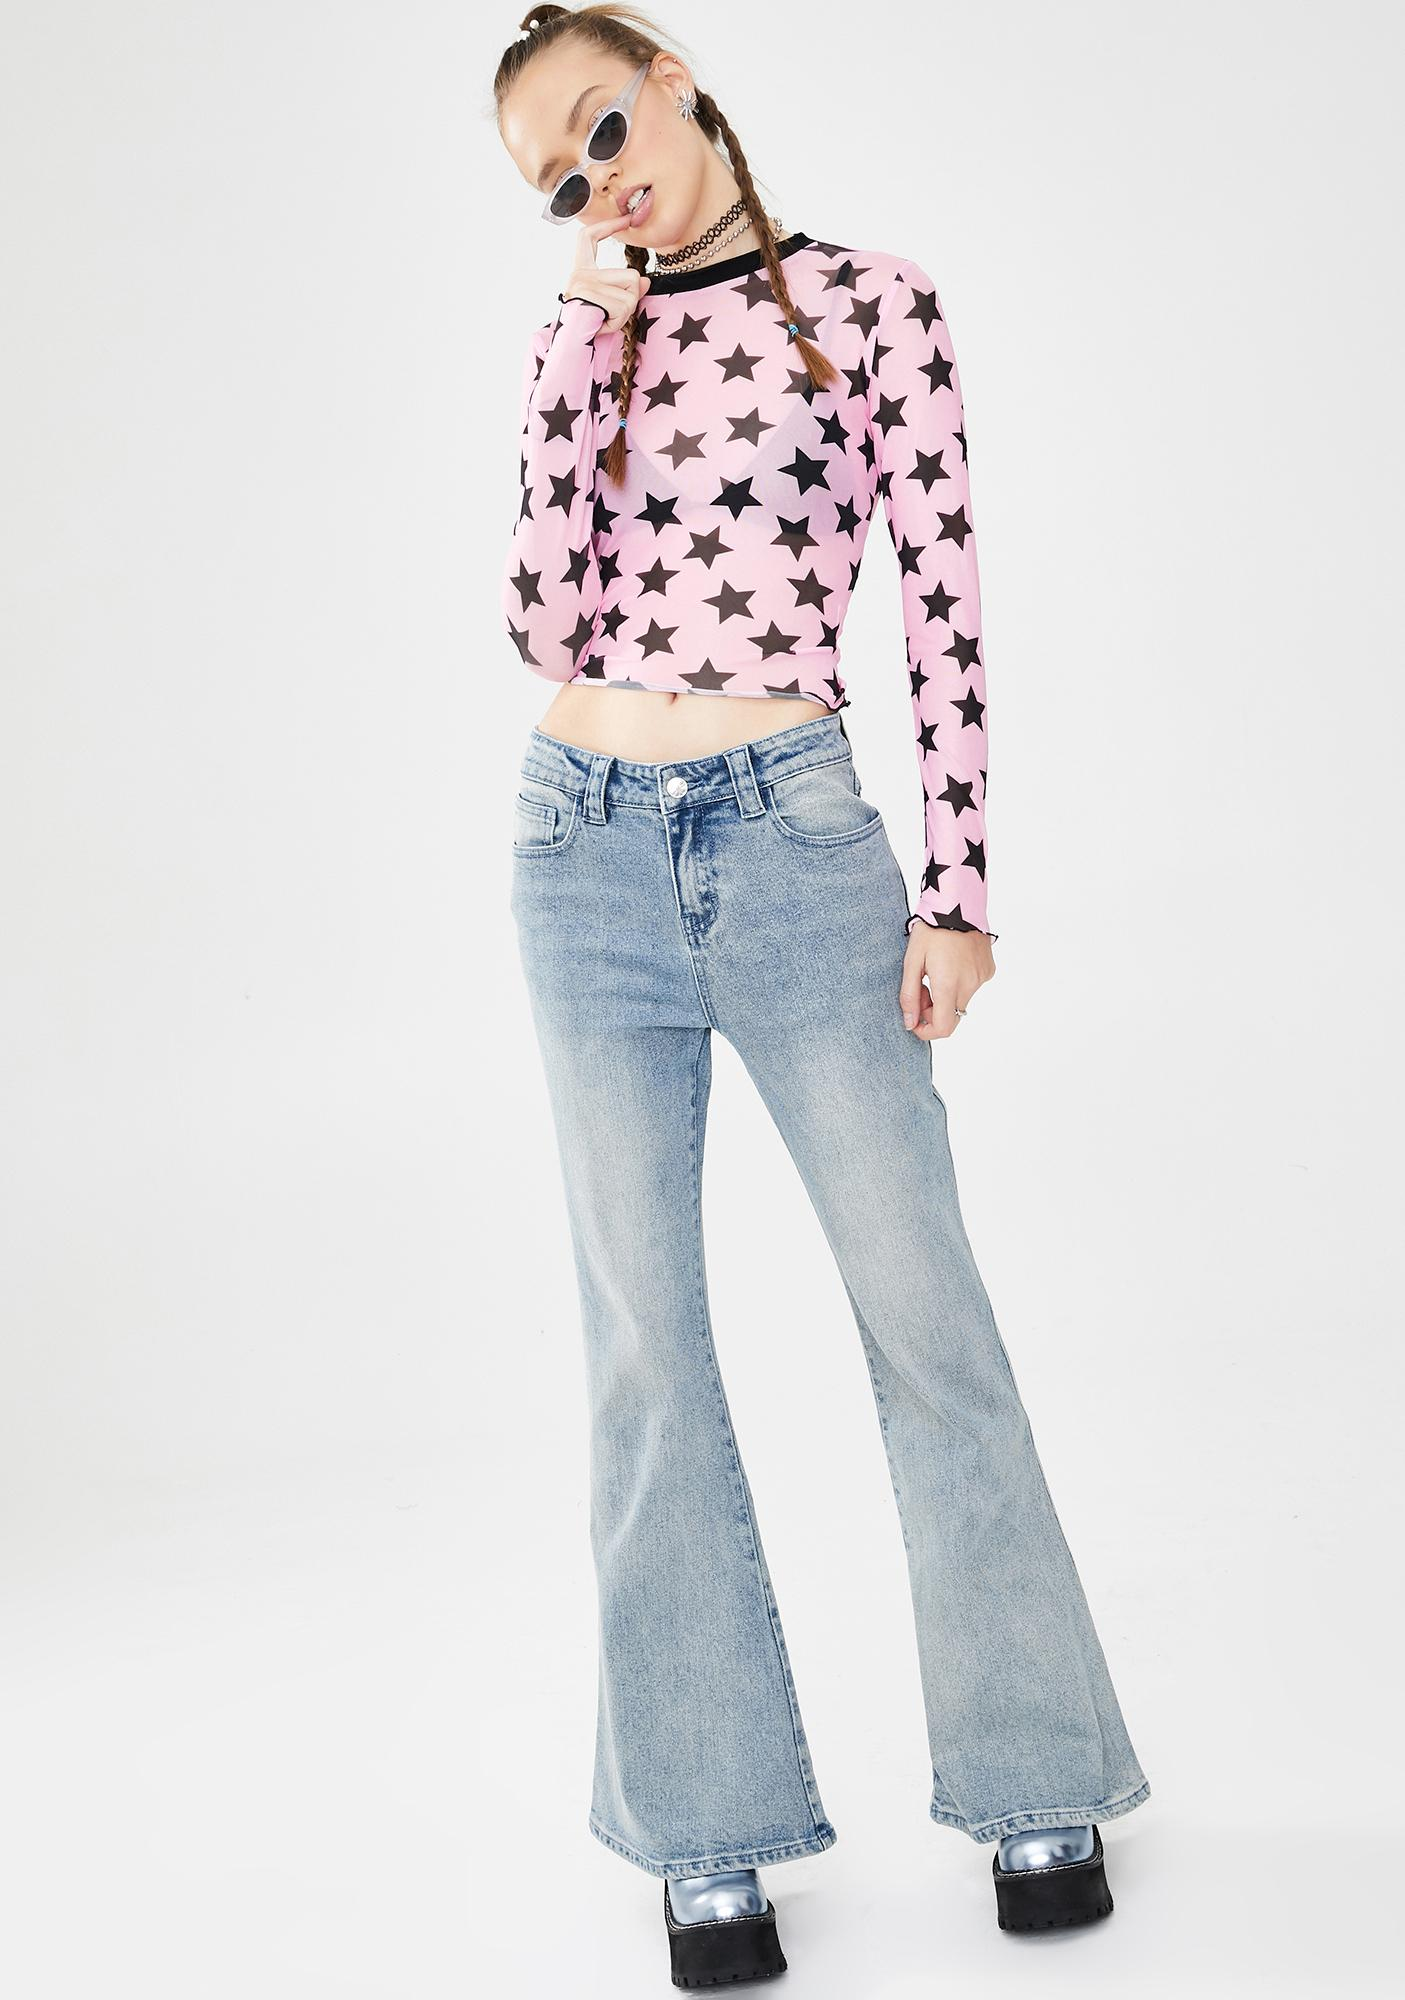 dELiA*s by Dolls Kill Moment Like This Mesh Top